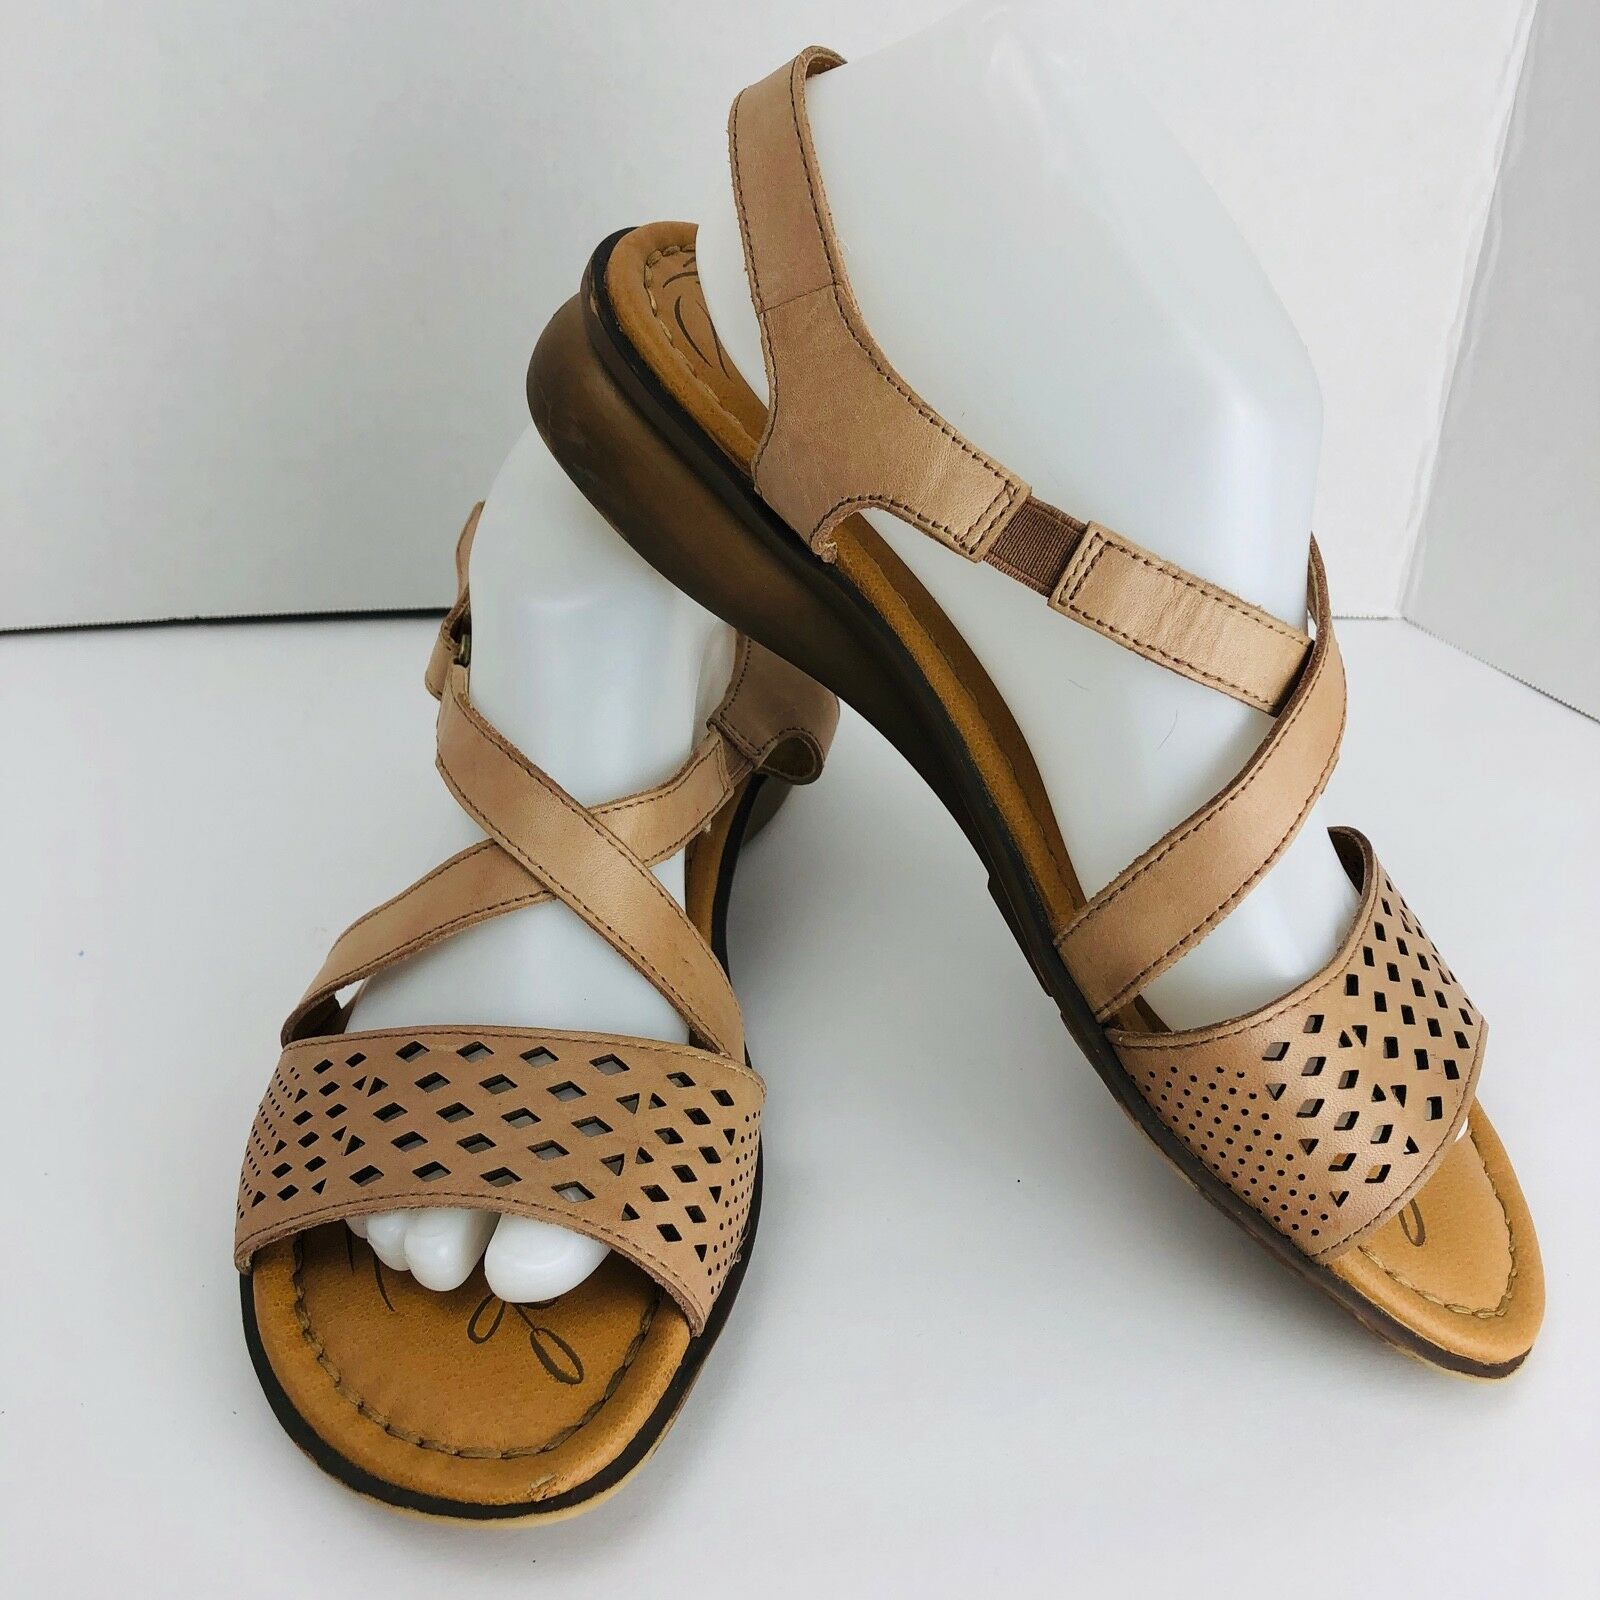 8b017115f2a3 Naturalizer Janessa Gingersnap Beige Leather Strappy Sandals Size 10 ...